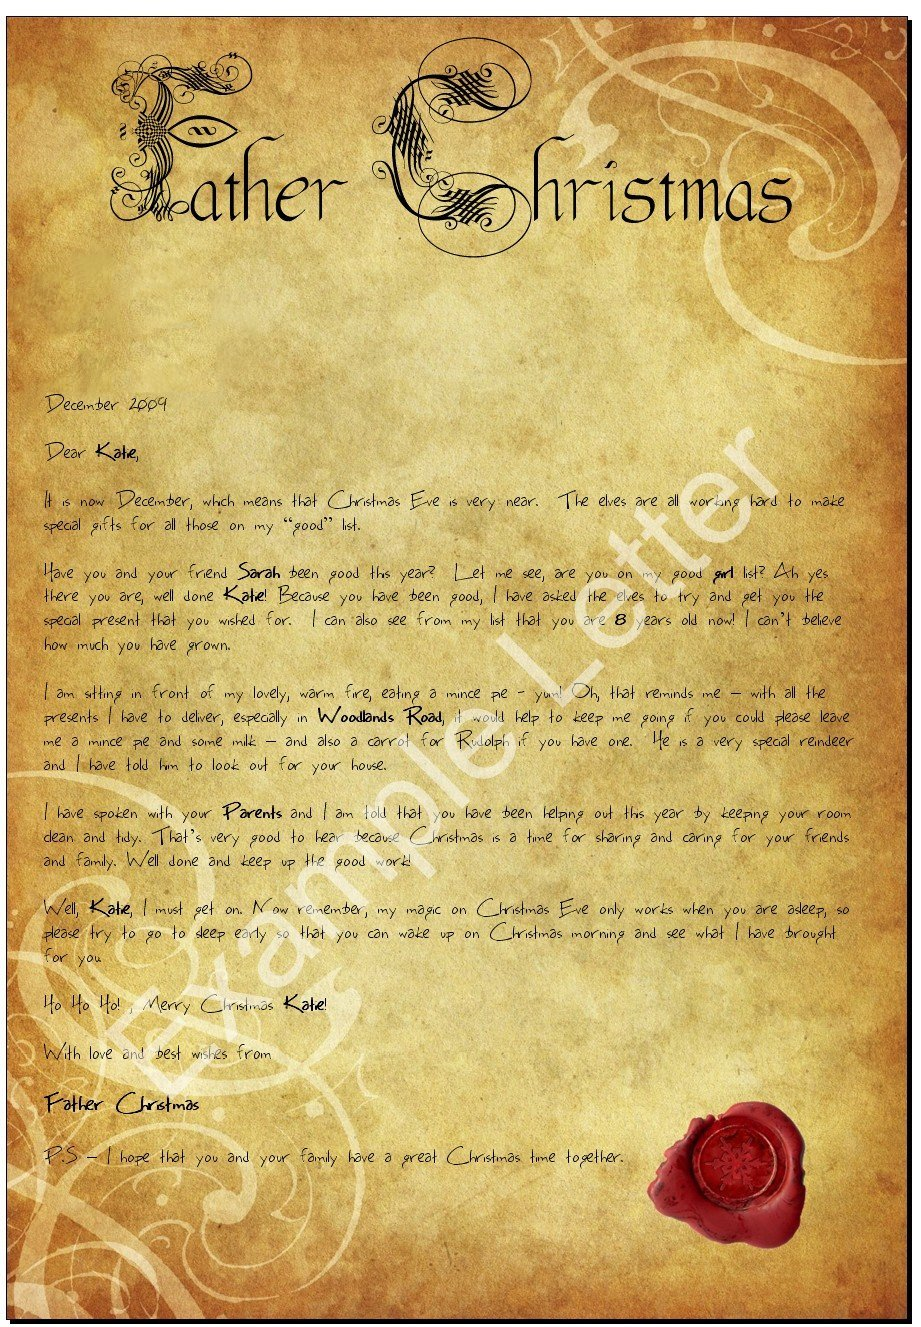 'Father Christmas'. This letter is also available from 'Santa Claus ...